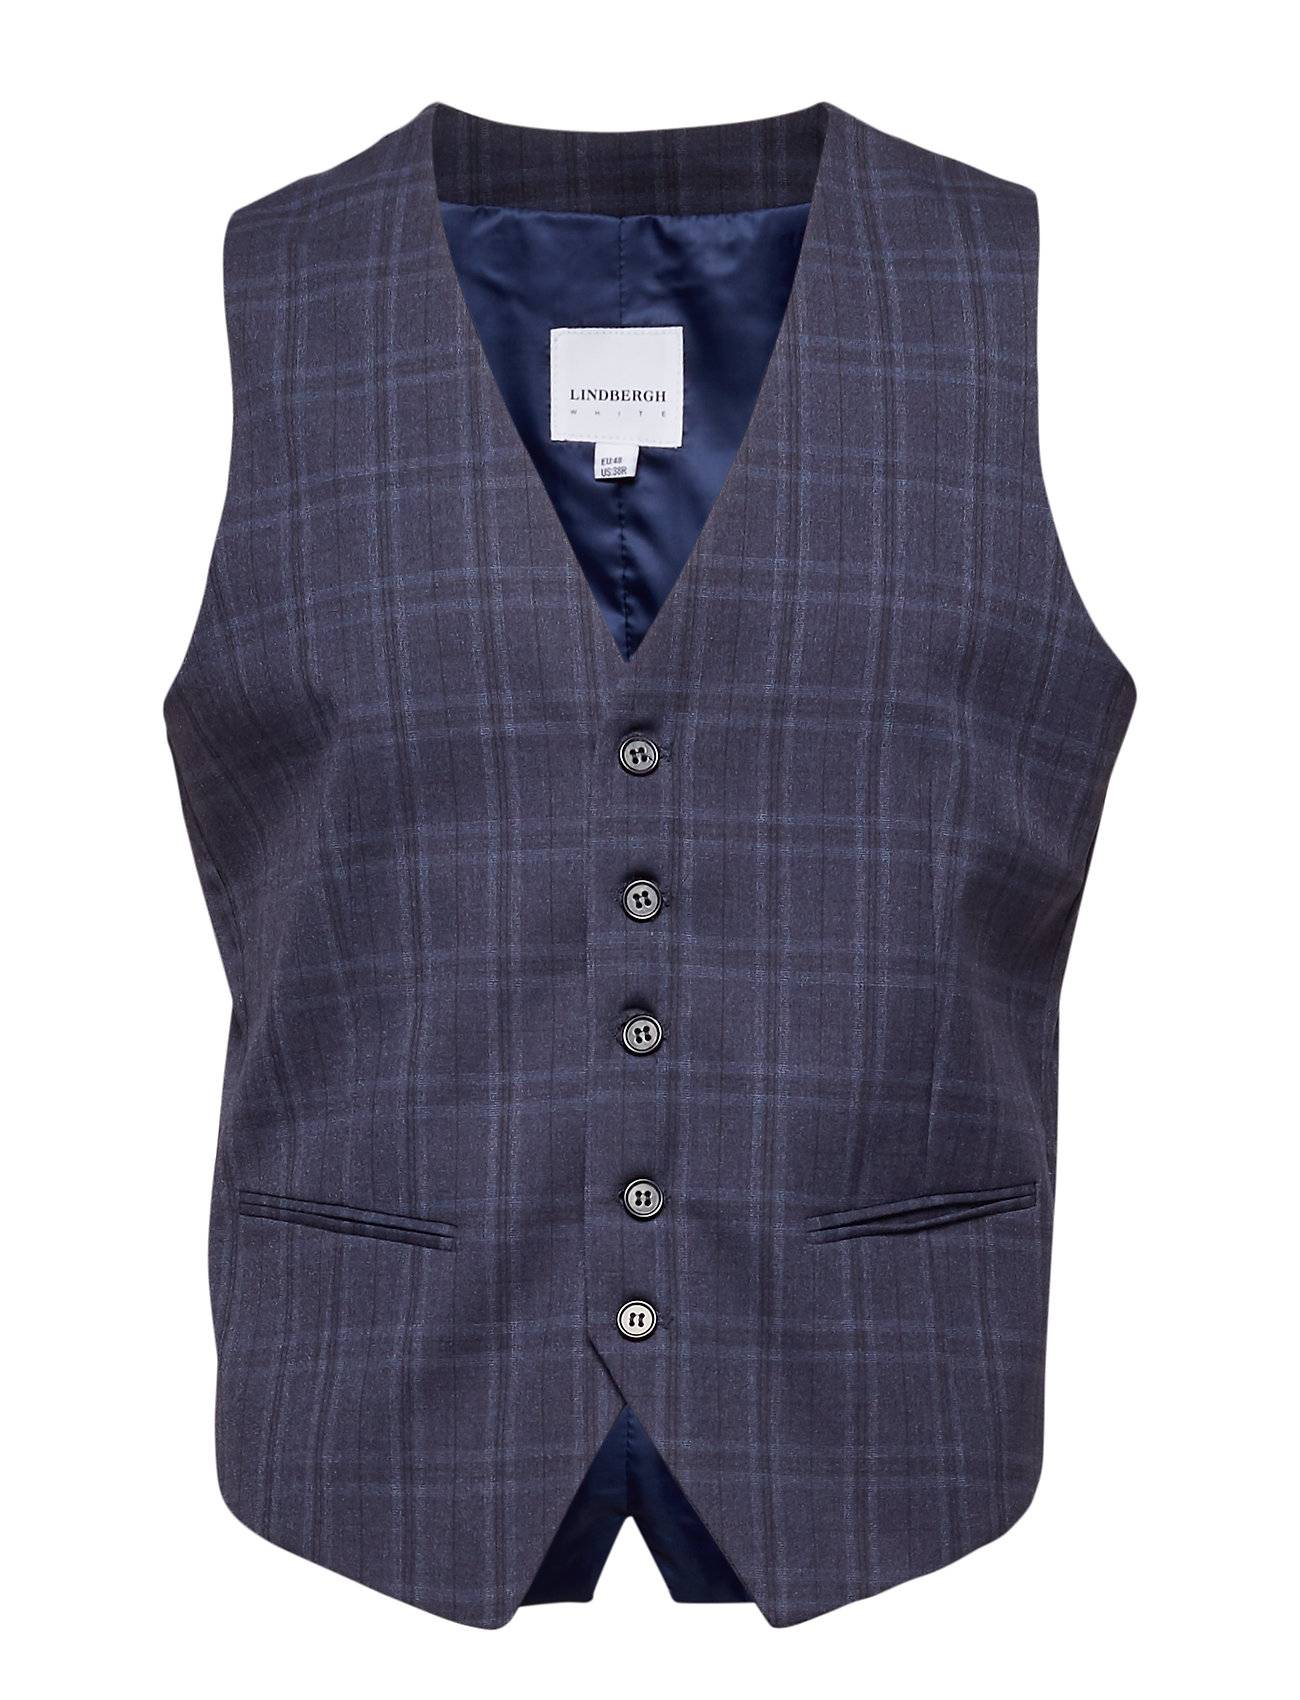 Lindbergh Waist Coat For Checked Suit